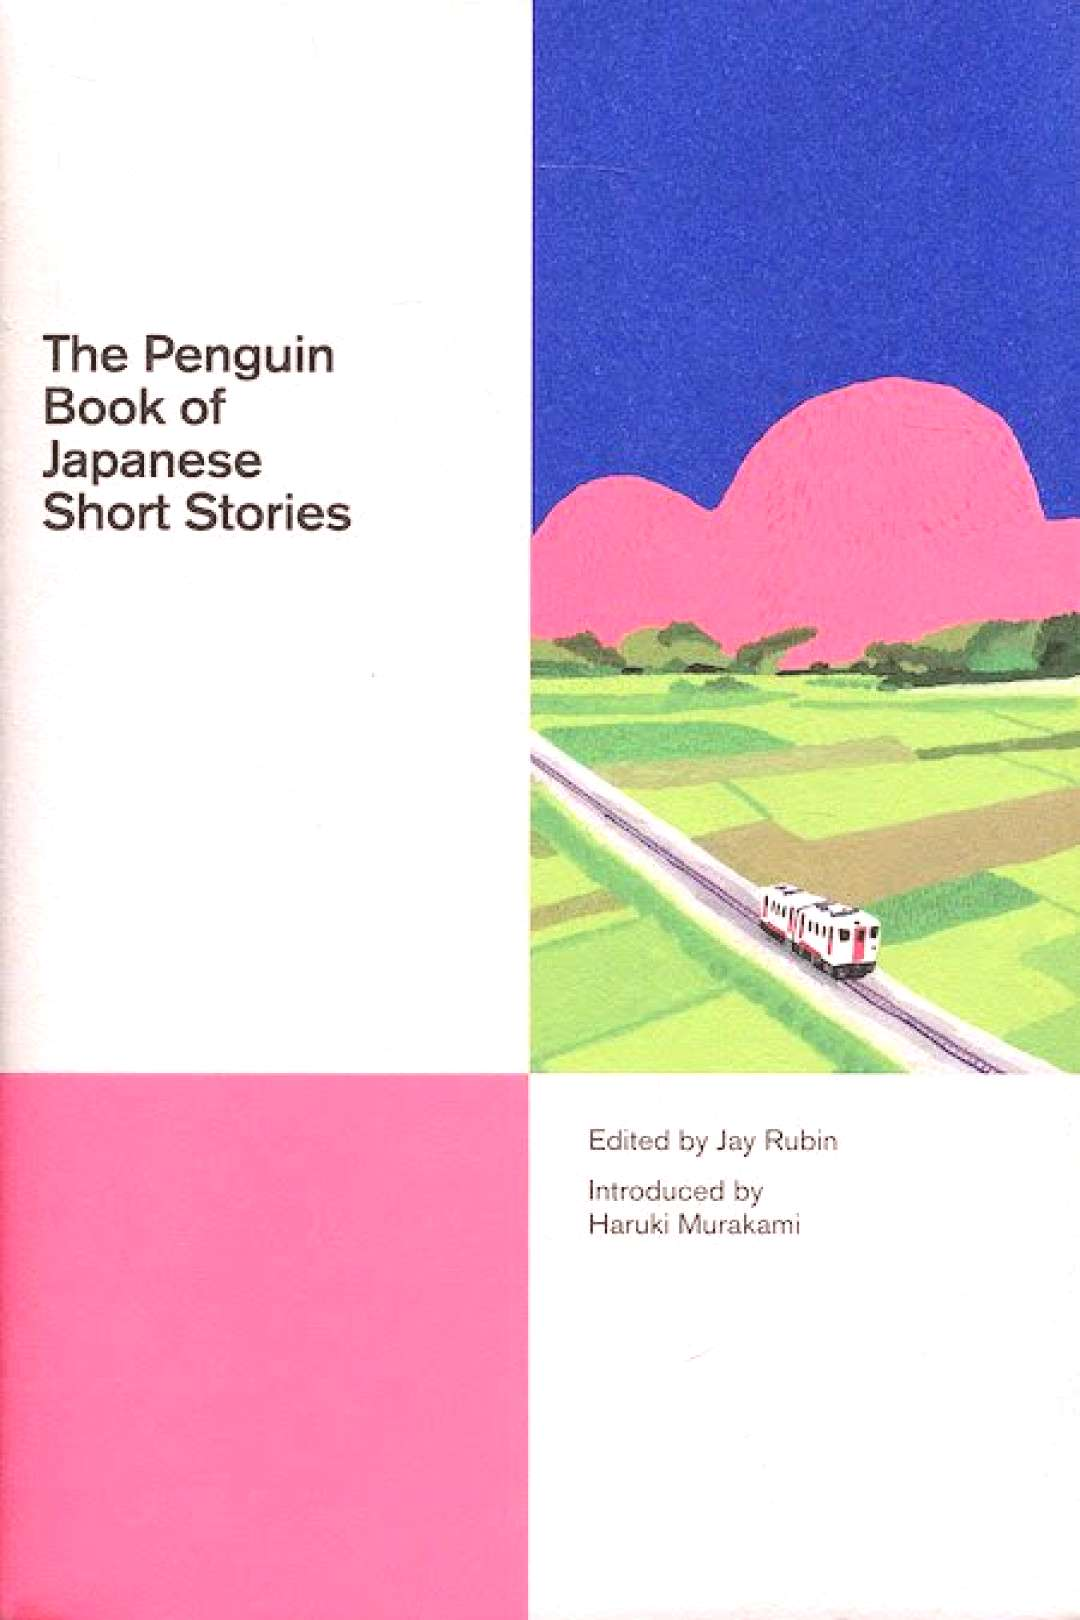 Jay Rubin, ed., The Penguin Book of Japanese Short Stories, design by Matthew Young (Penguin)